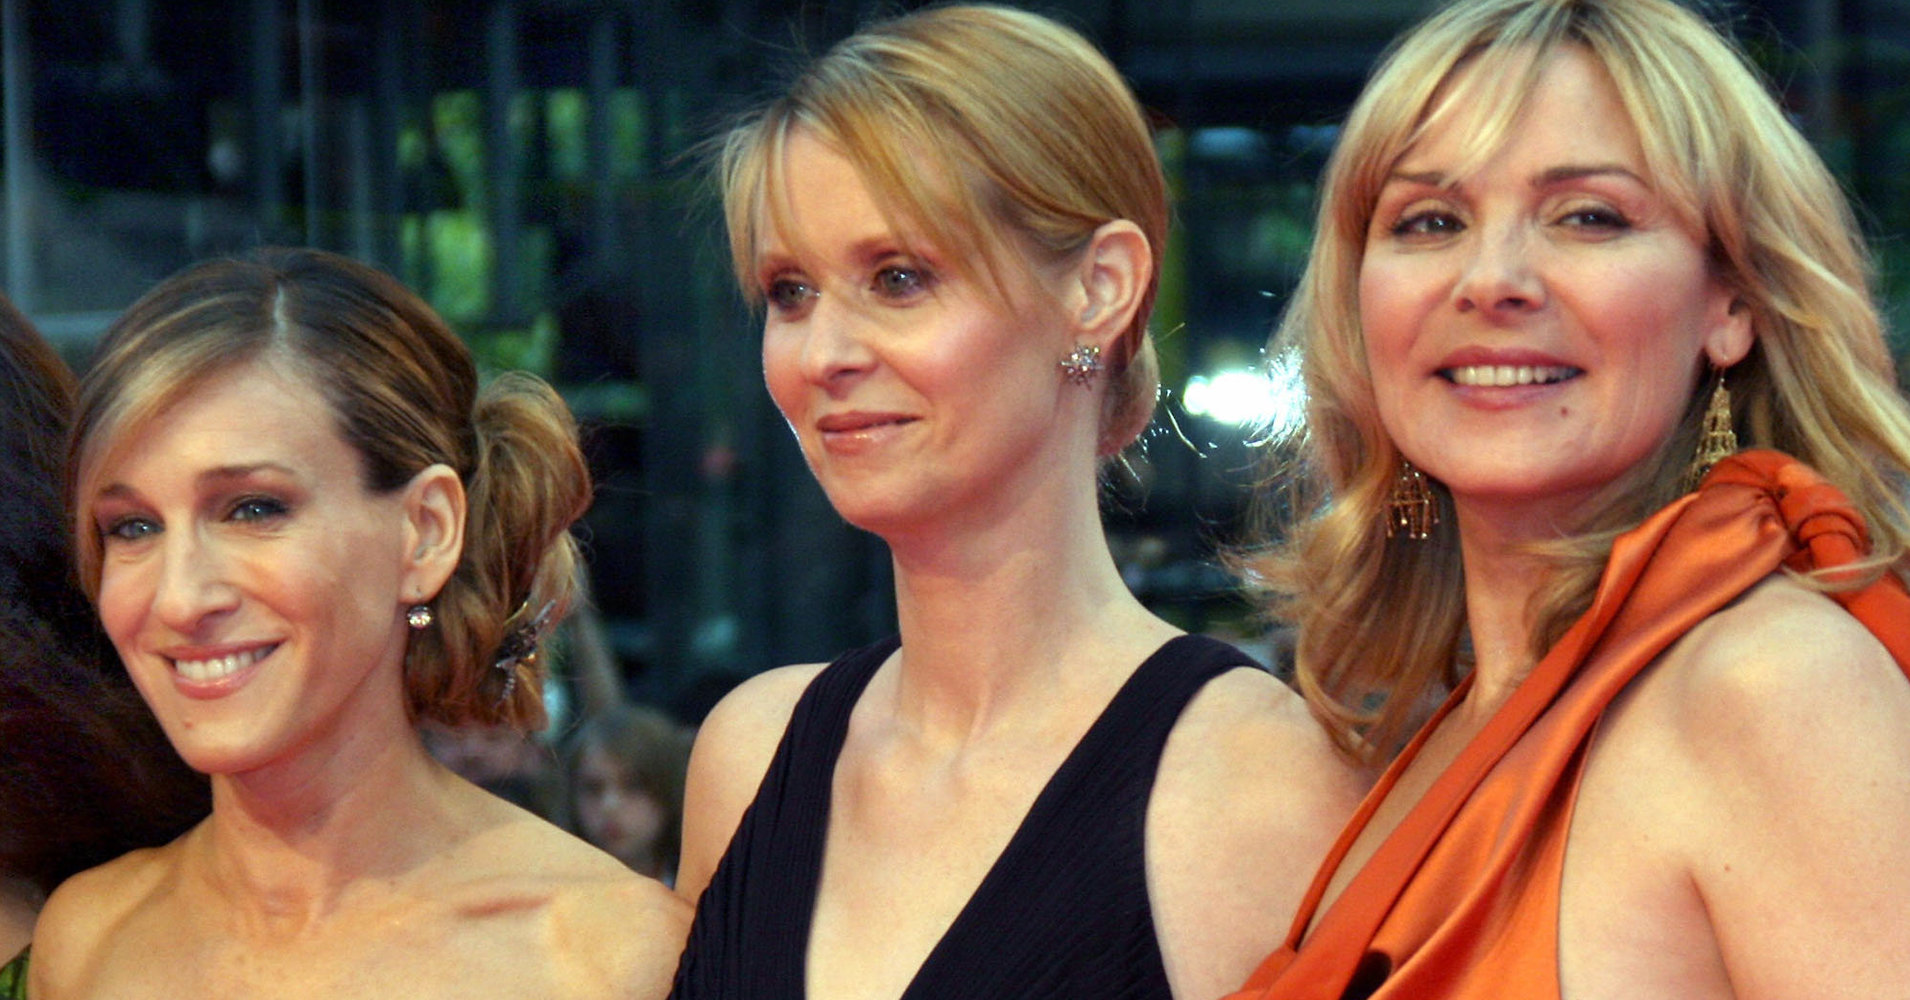 Kim Cattrall Shows Cynthia Nixon Some Love After Slamming Sarah Jessica Parker